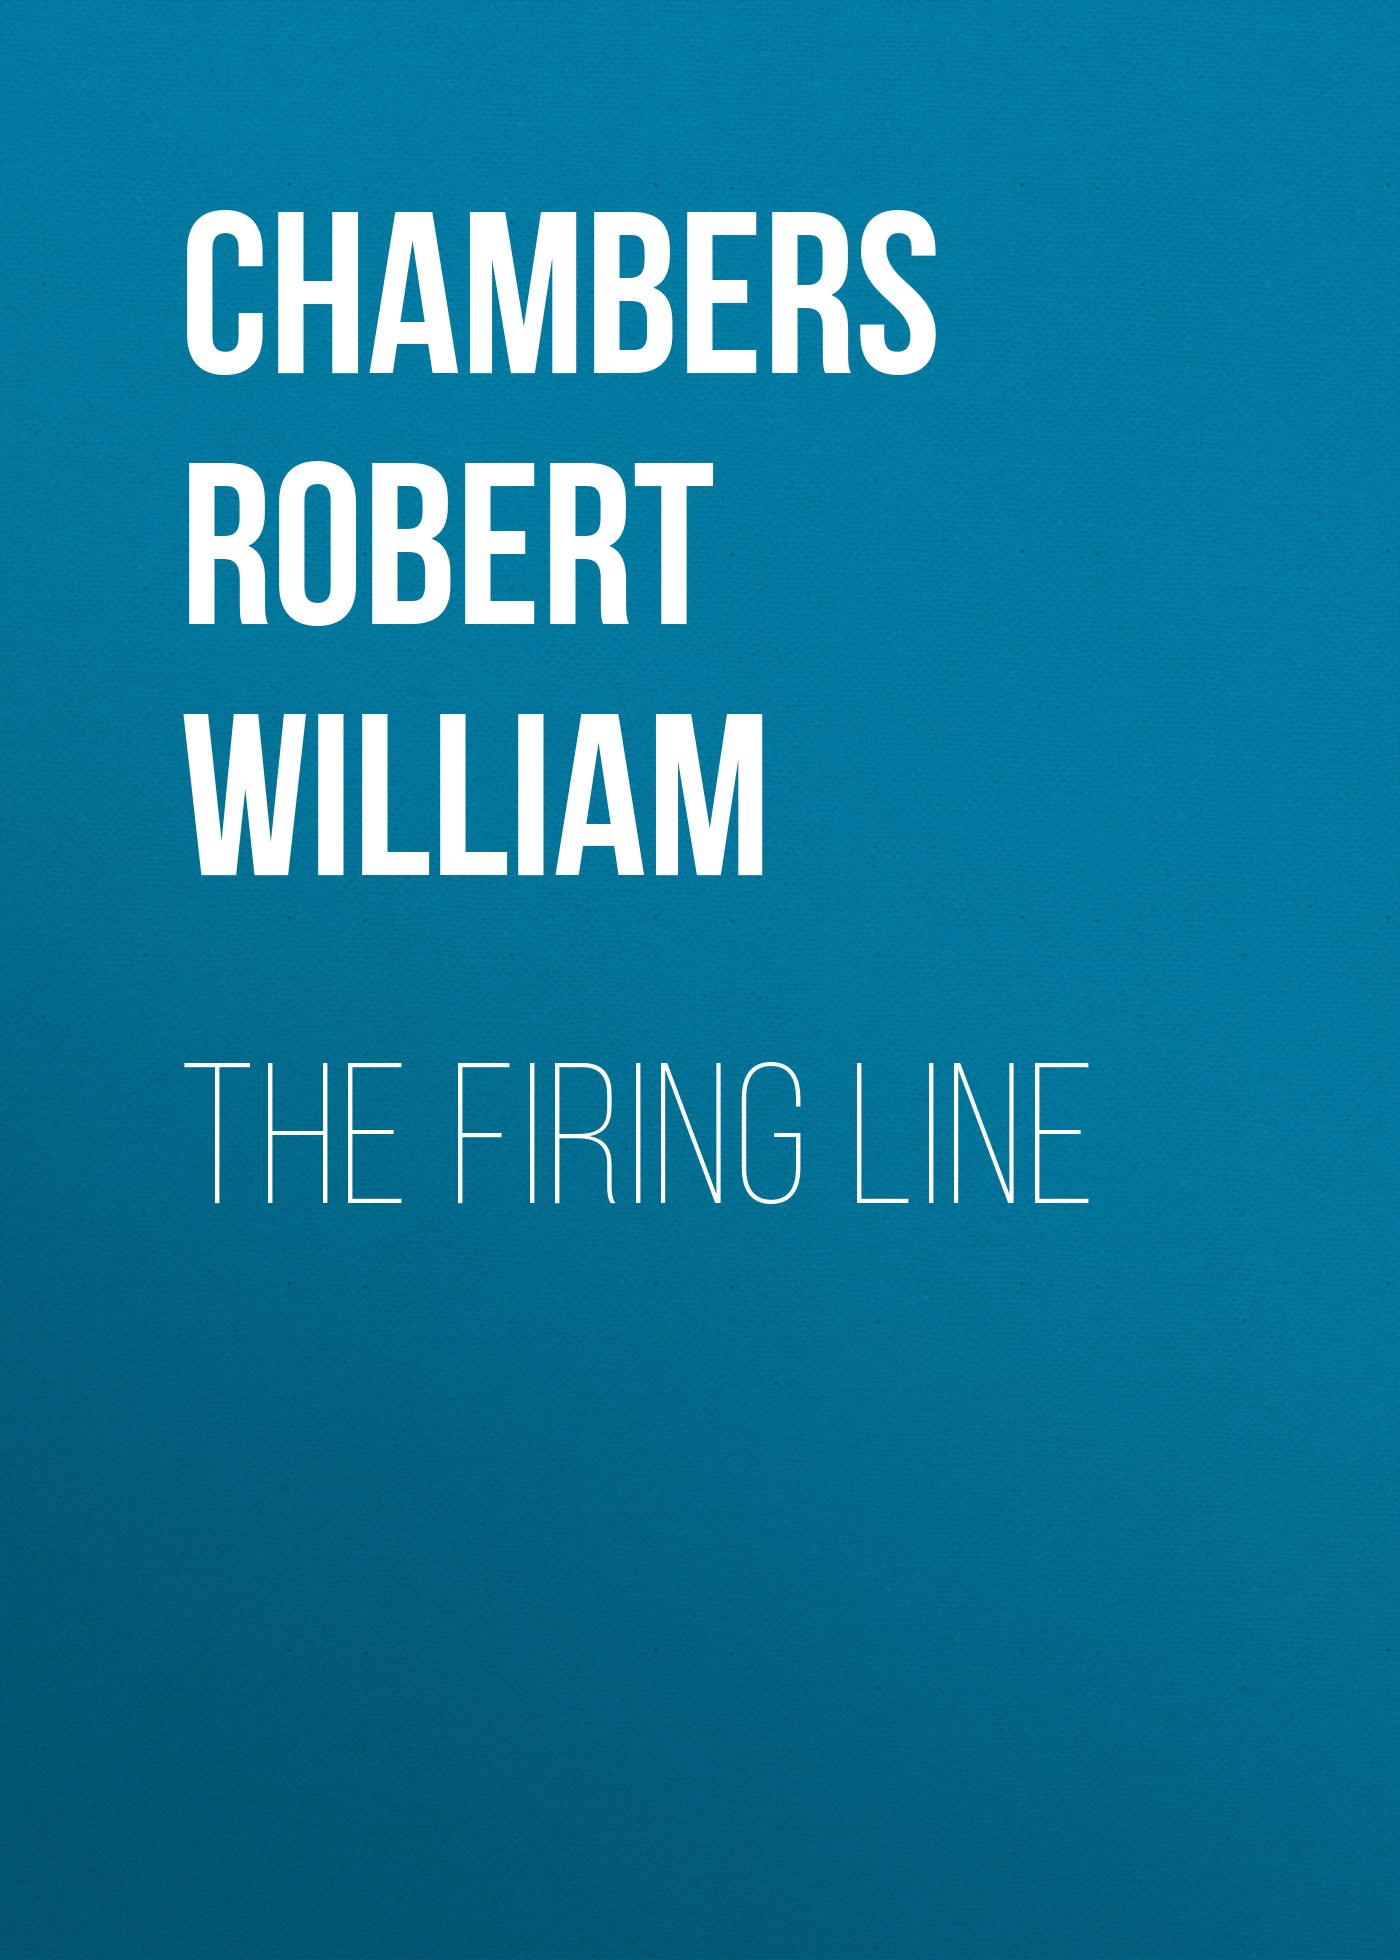 купить Chambers Robert William The Firing Line в интернет-магазине